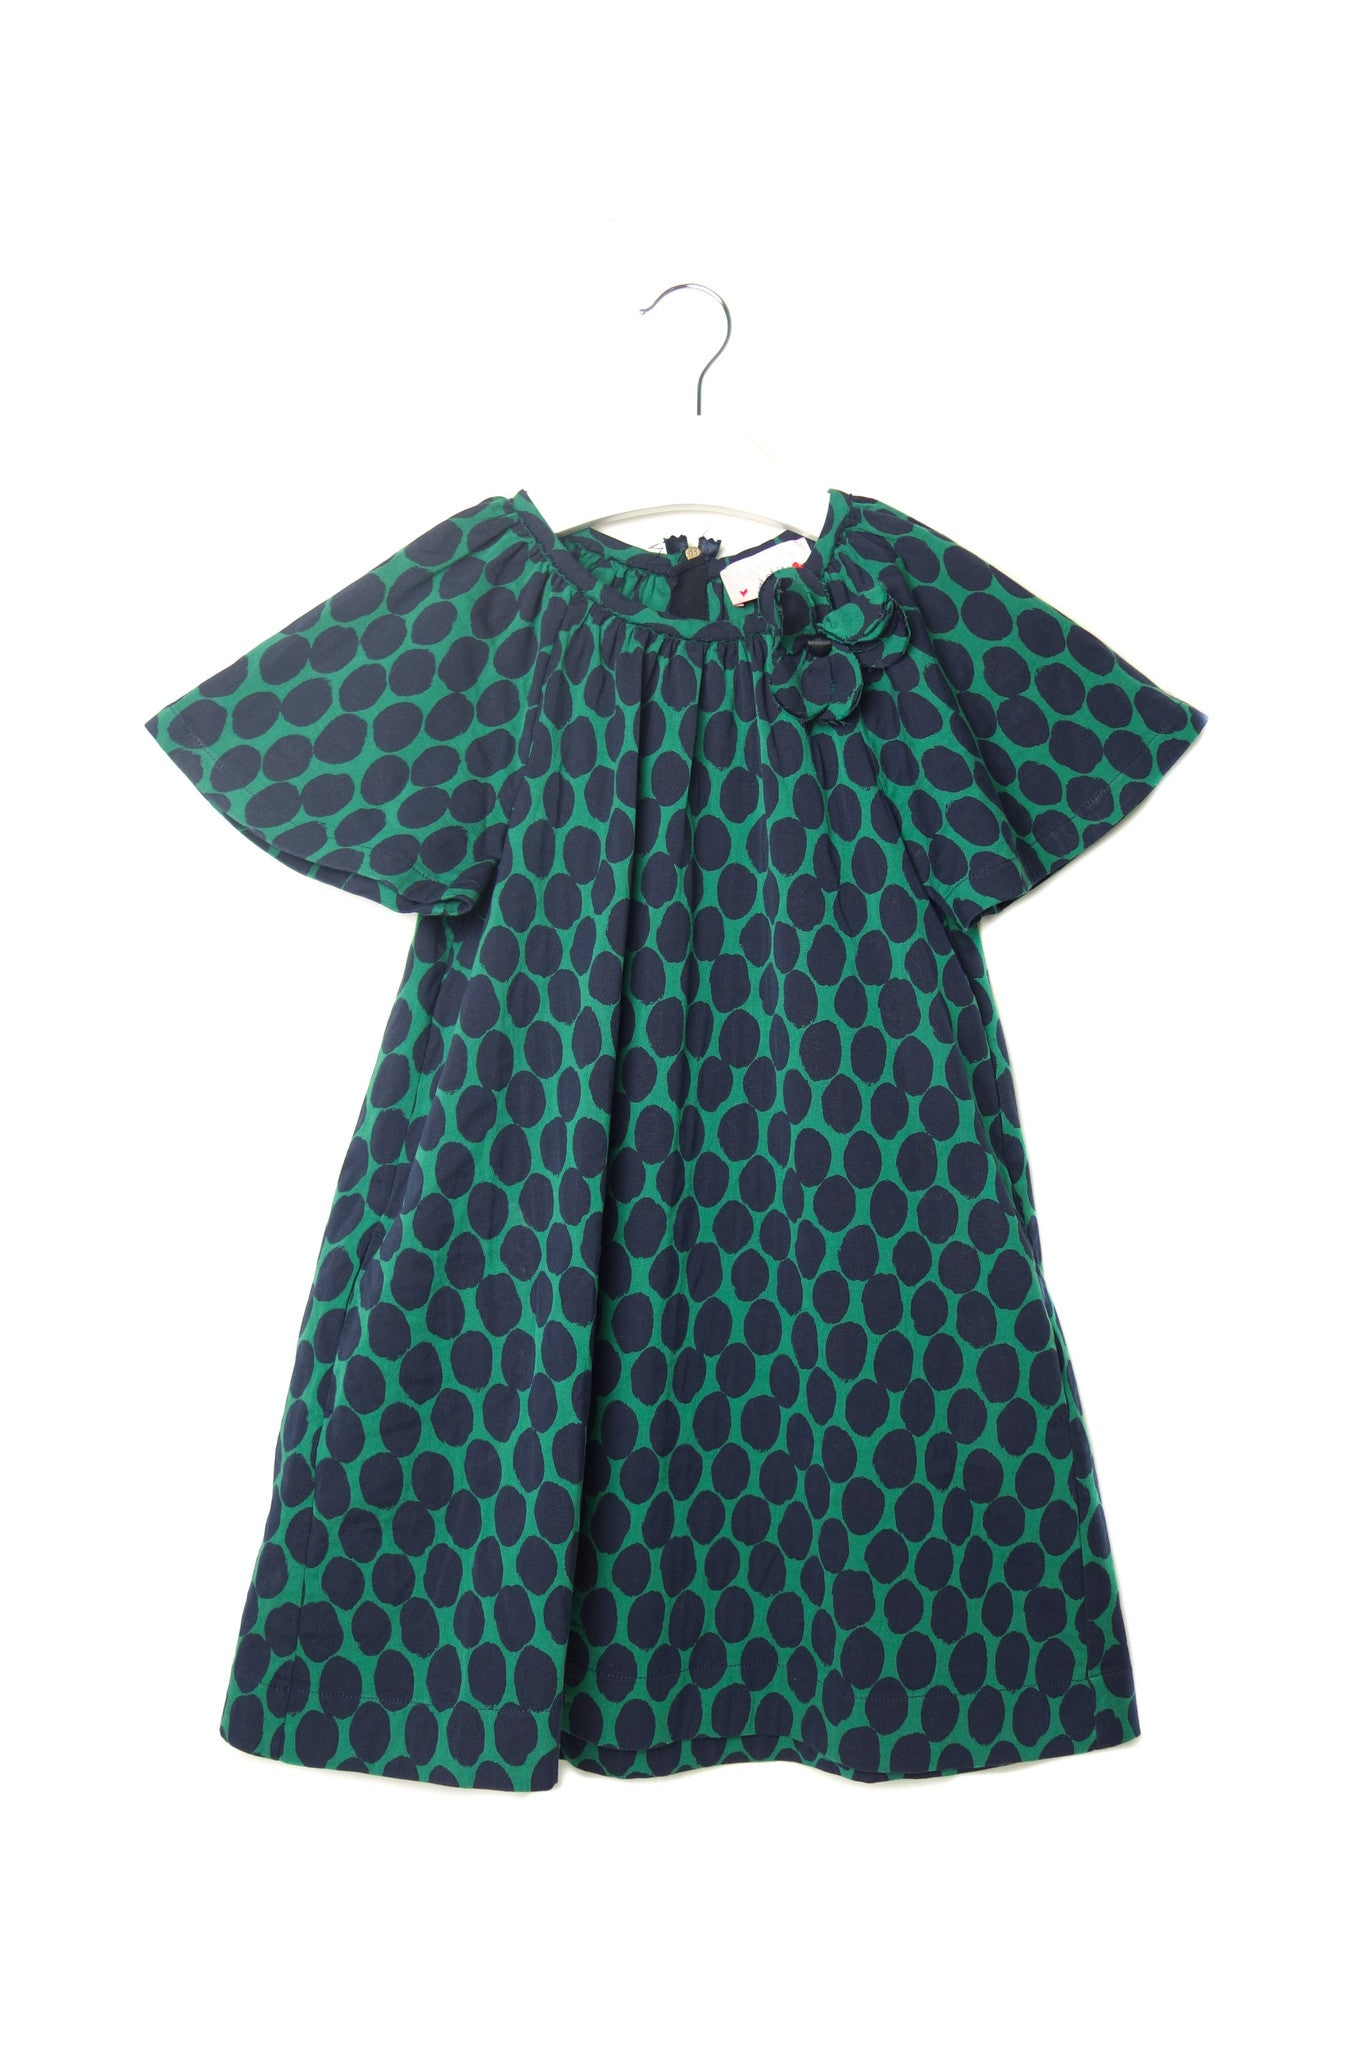 10002044 Lanvin Petite Kids~Dress 8 at Retykle